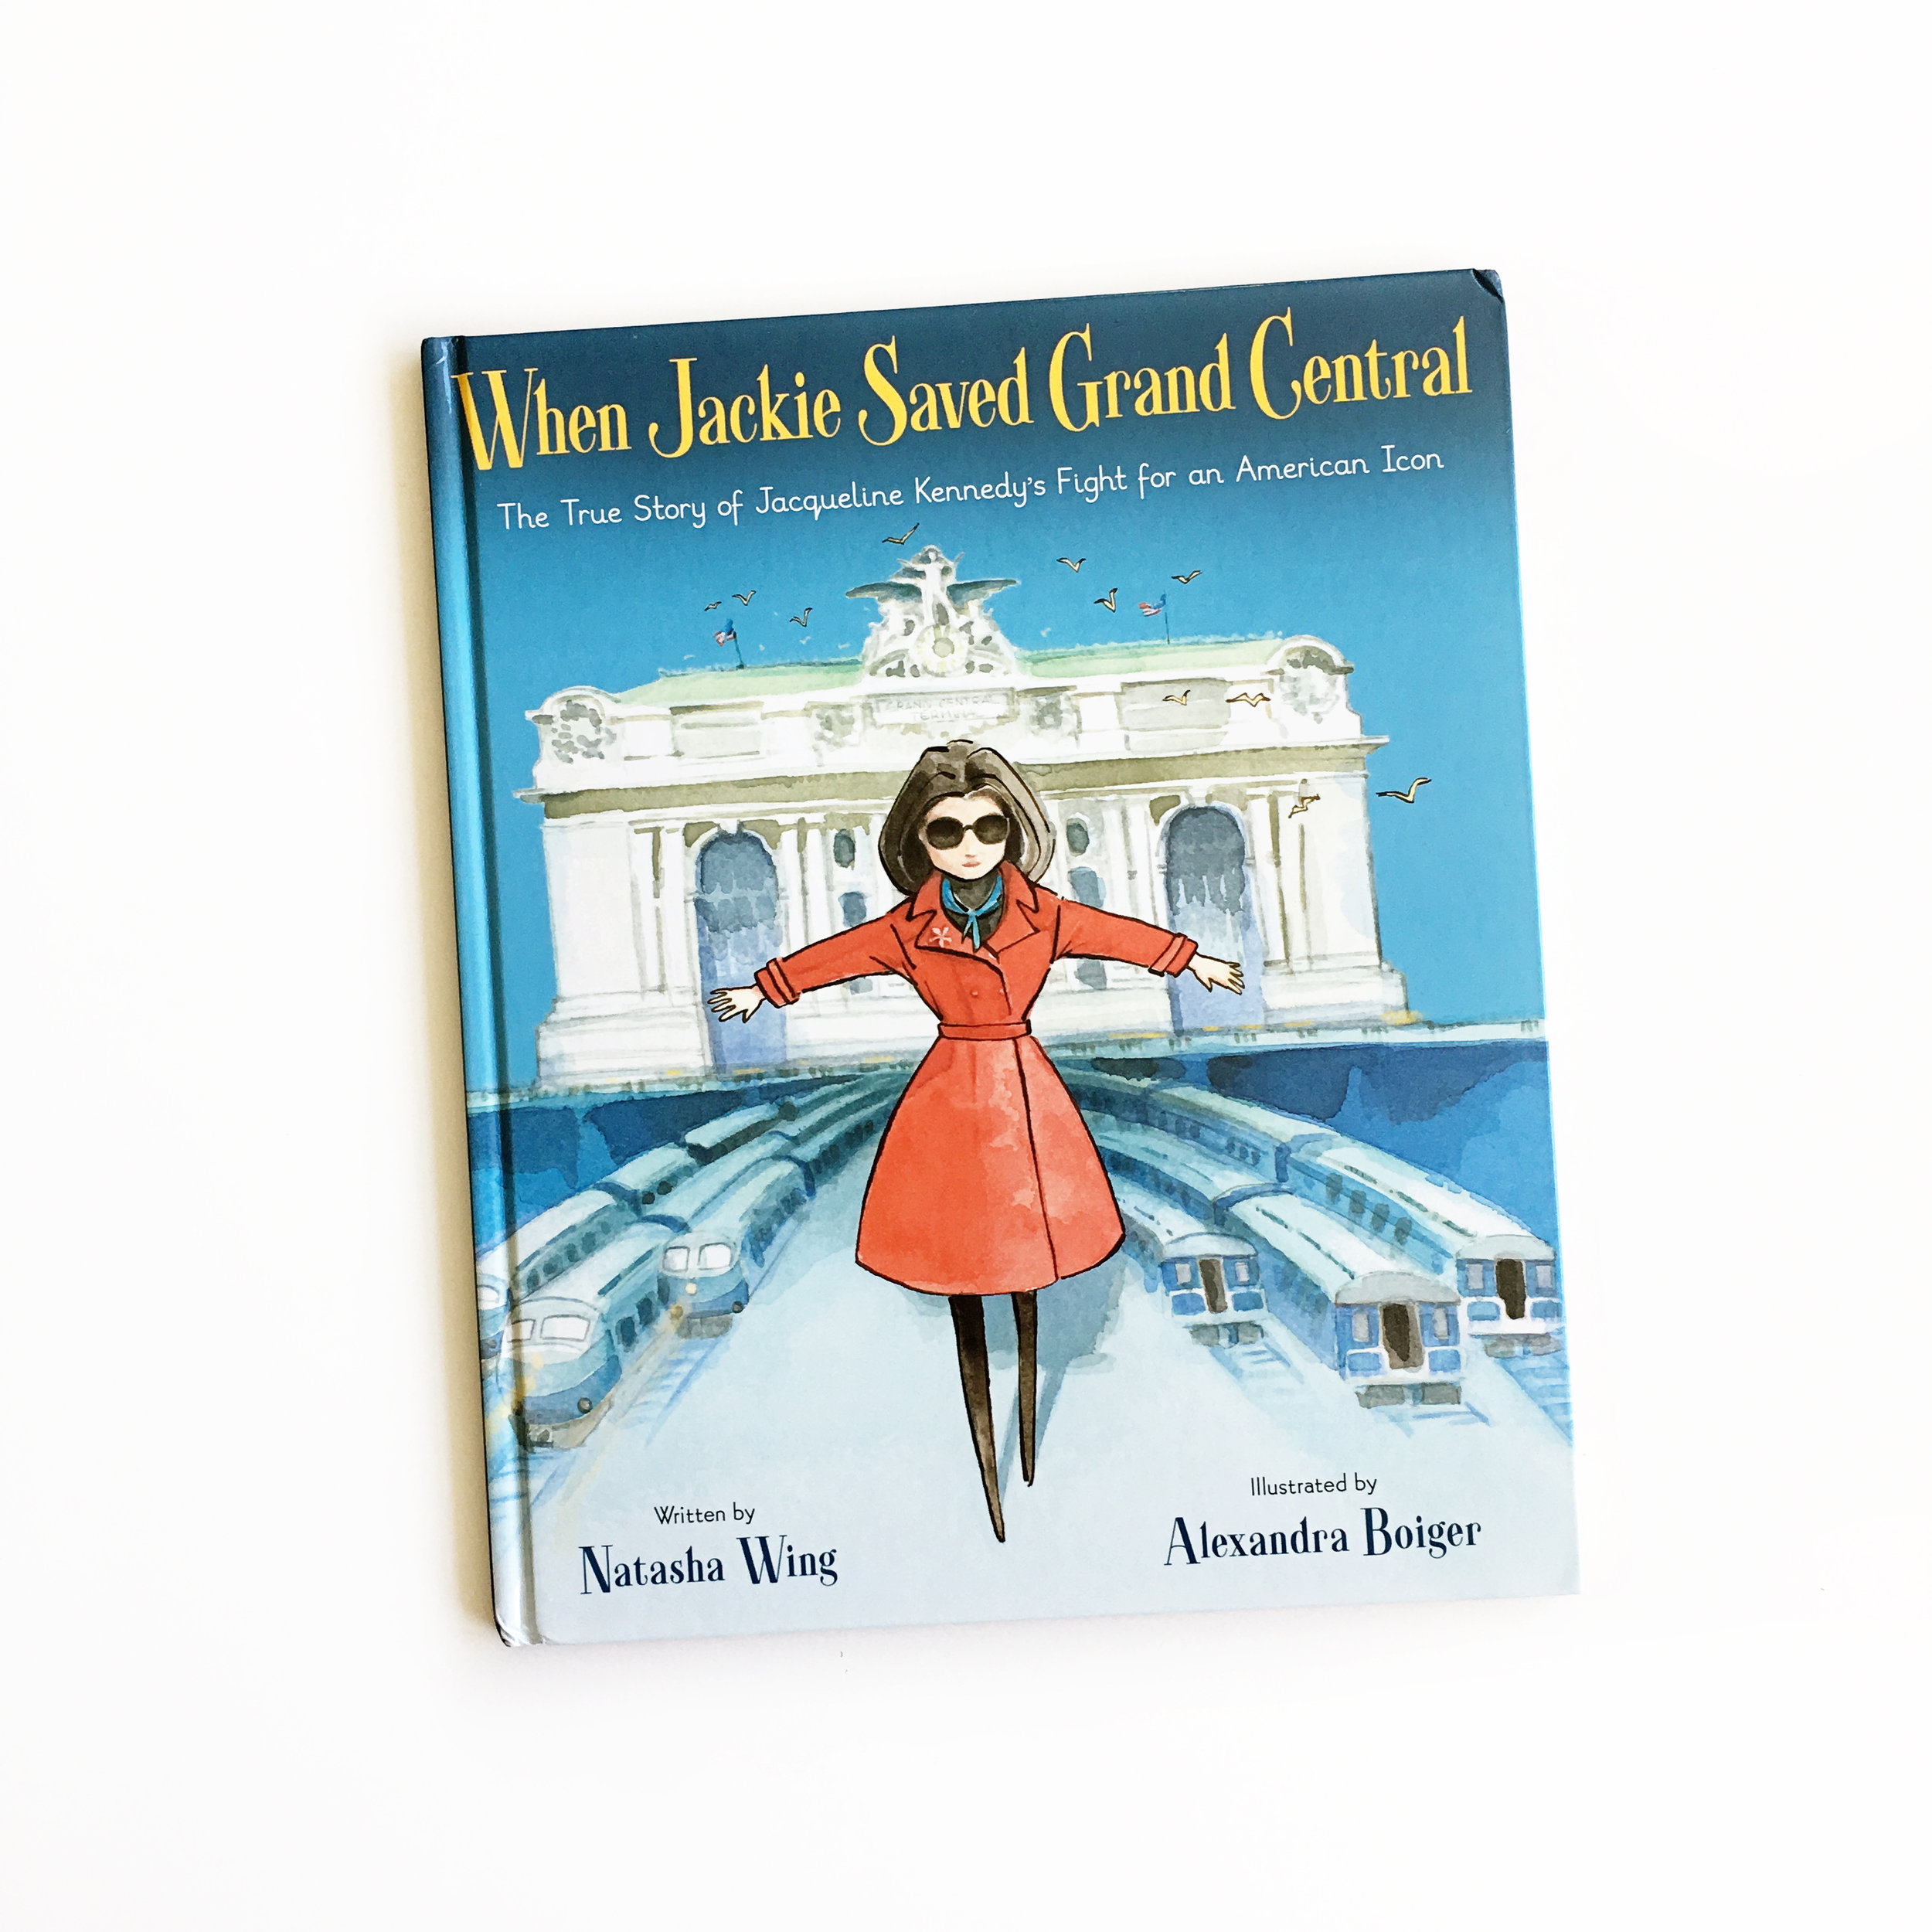 When Jackie Saved Grand Central: The True Story of Jacqueline Kennedy's Fight for an American Icon | Little Lit Book Series